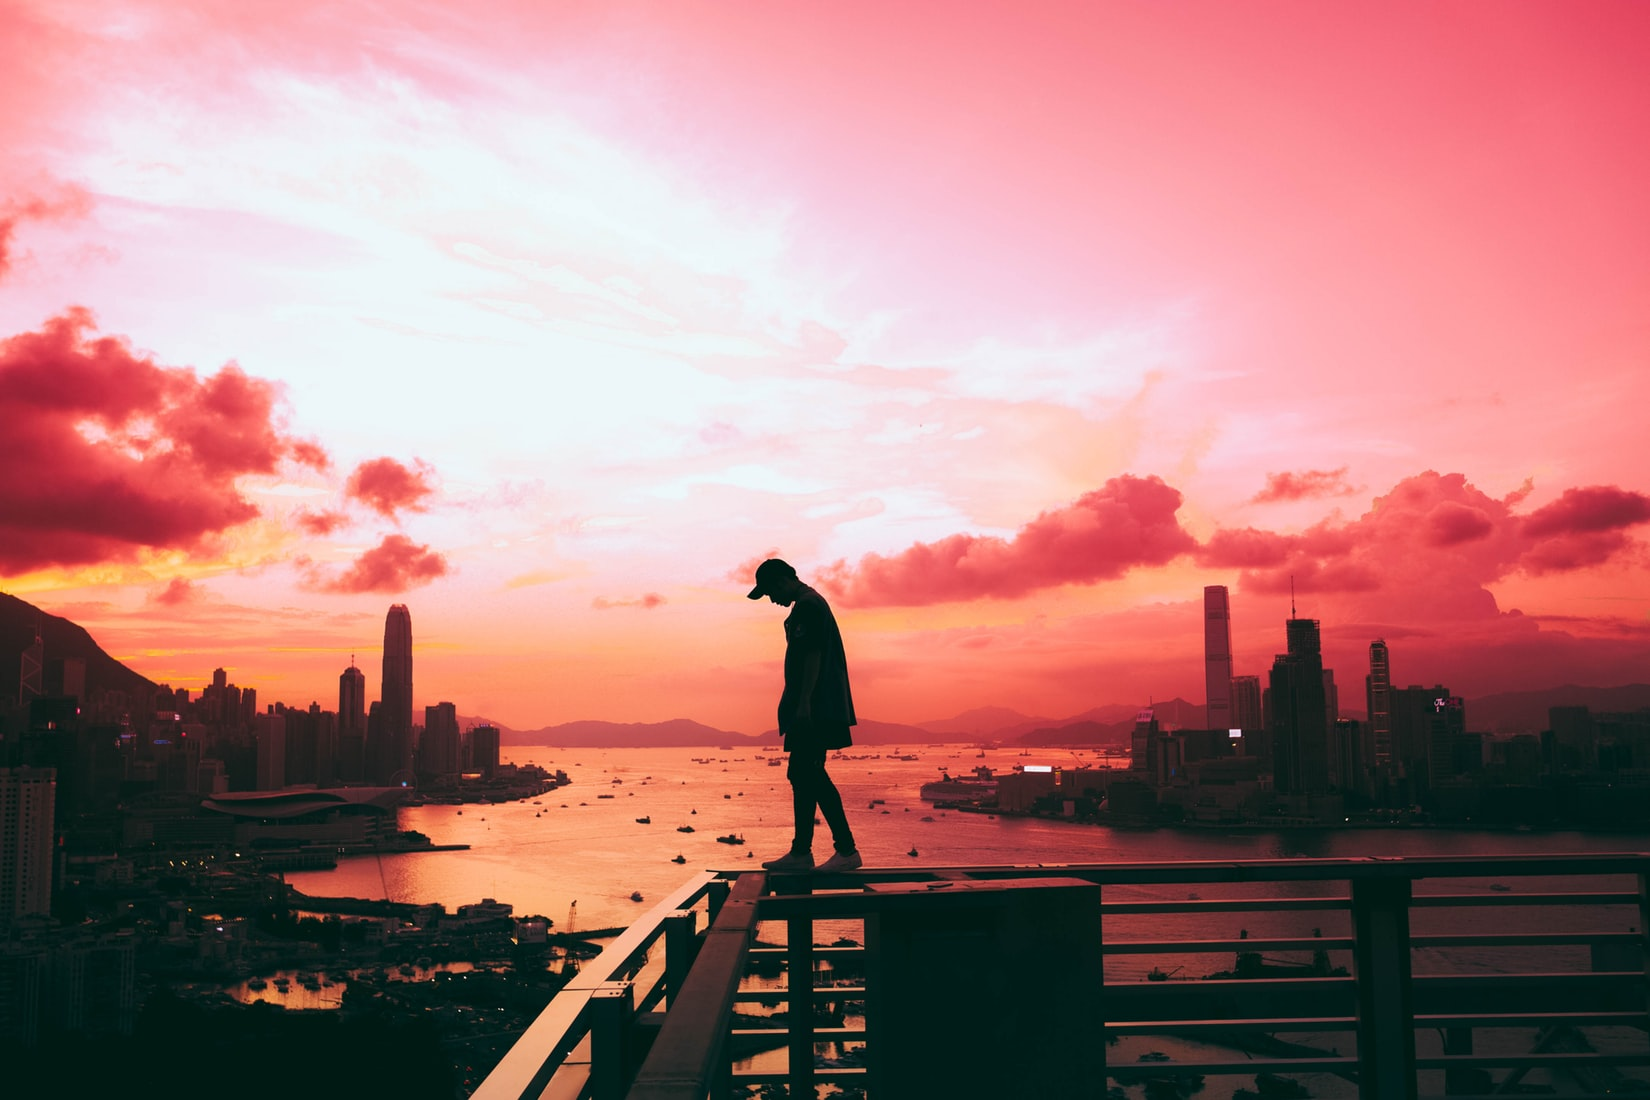 Silhouette of lonely man standing on railing of building in front of body of water and city